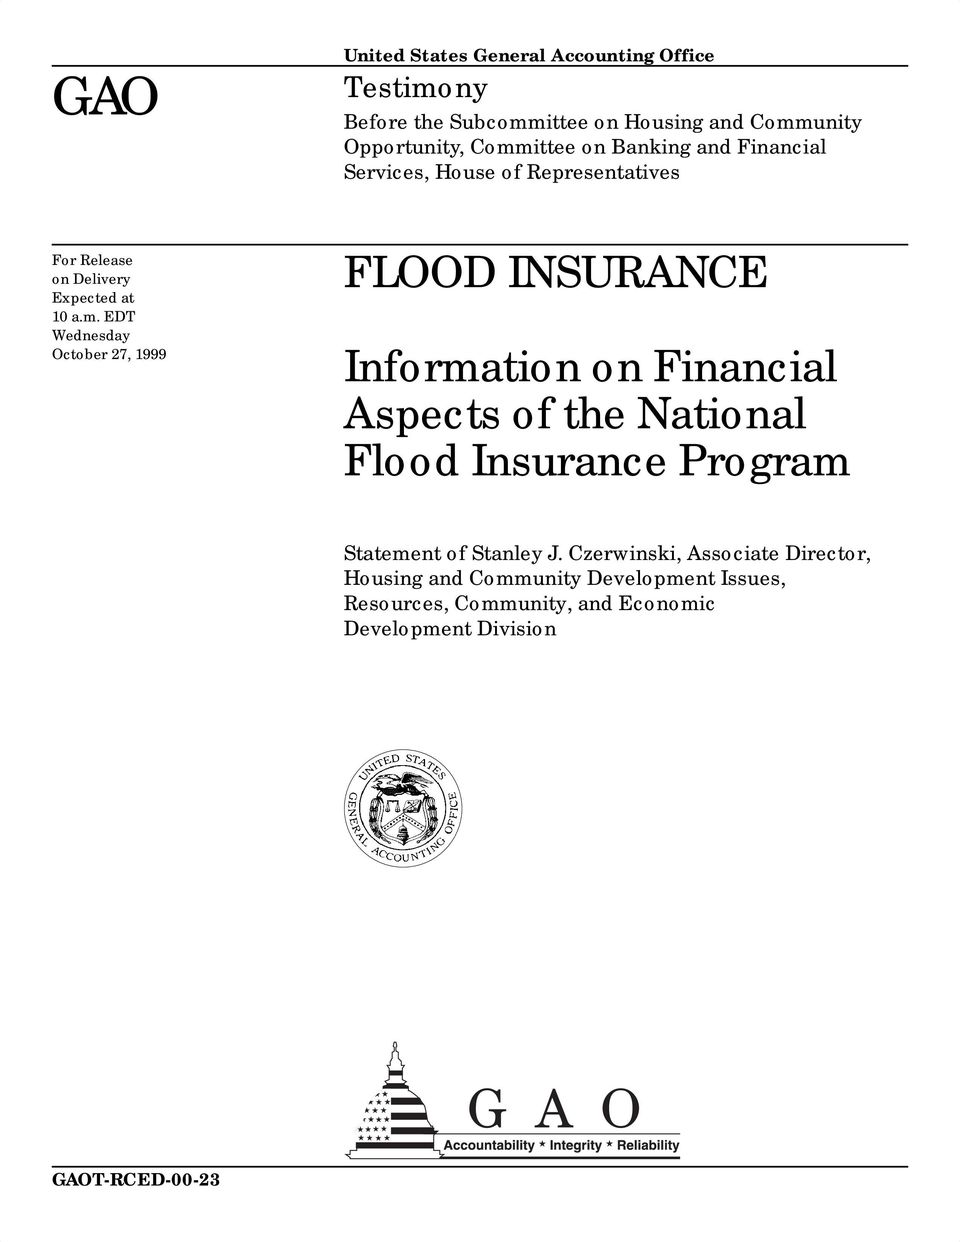 EDT Wednesday October 27, 1999 FLOOD INSURANCE Information on Financial Aspects of the National Flood Insurance Program